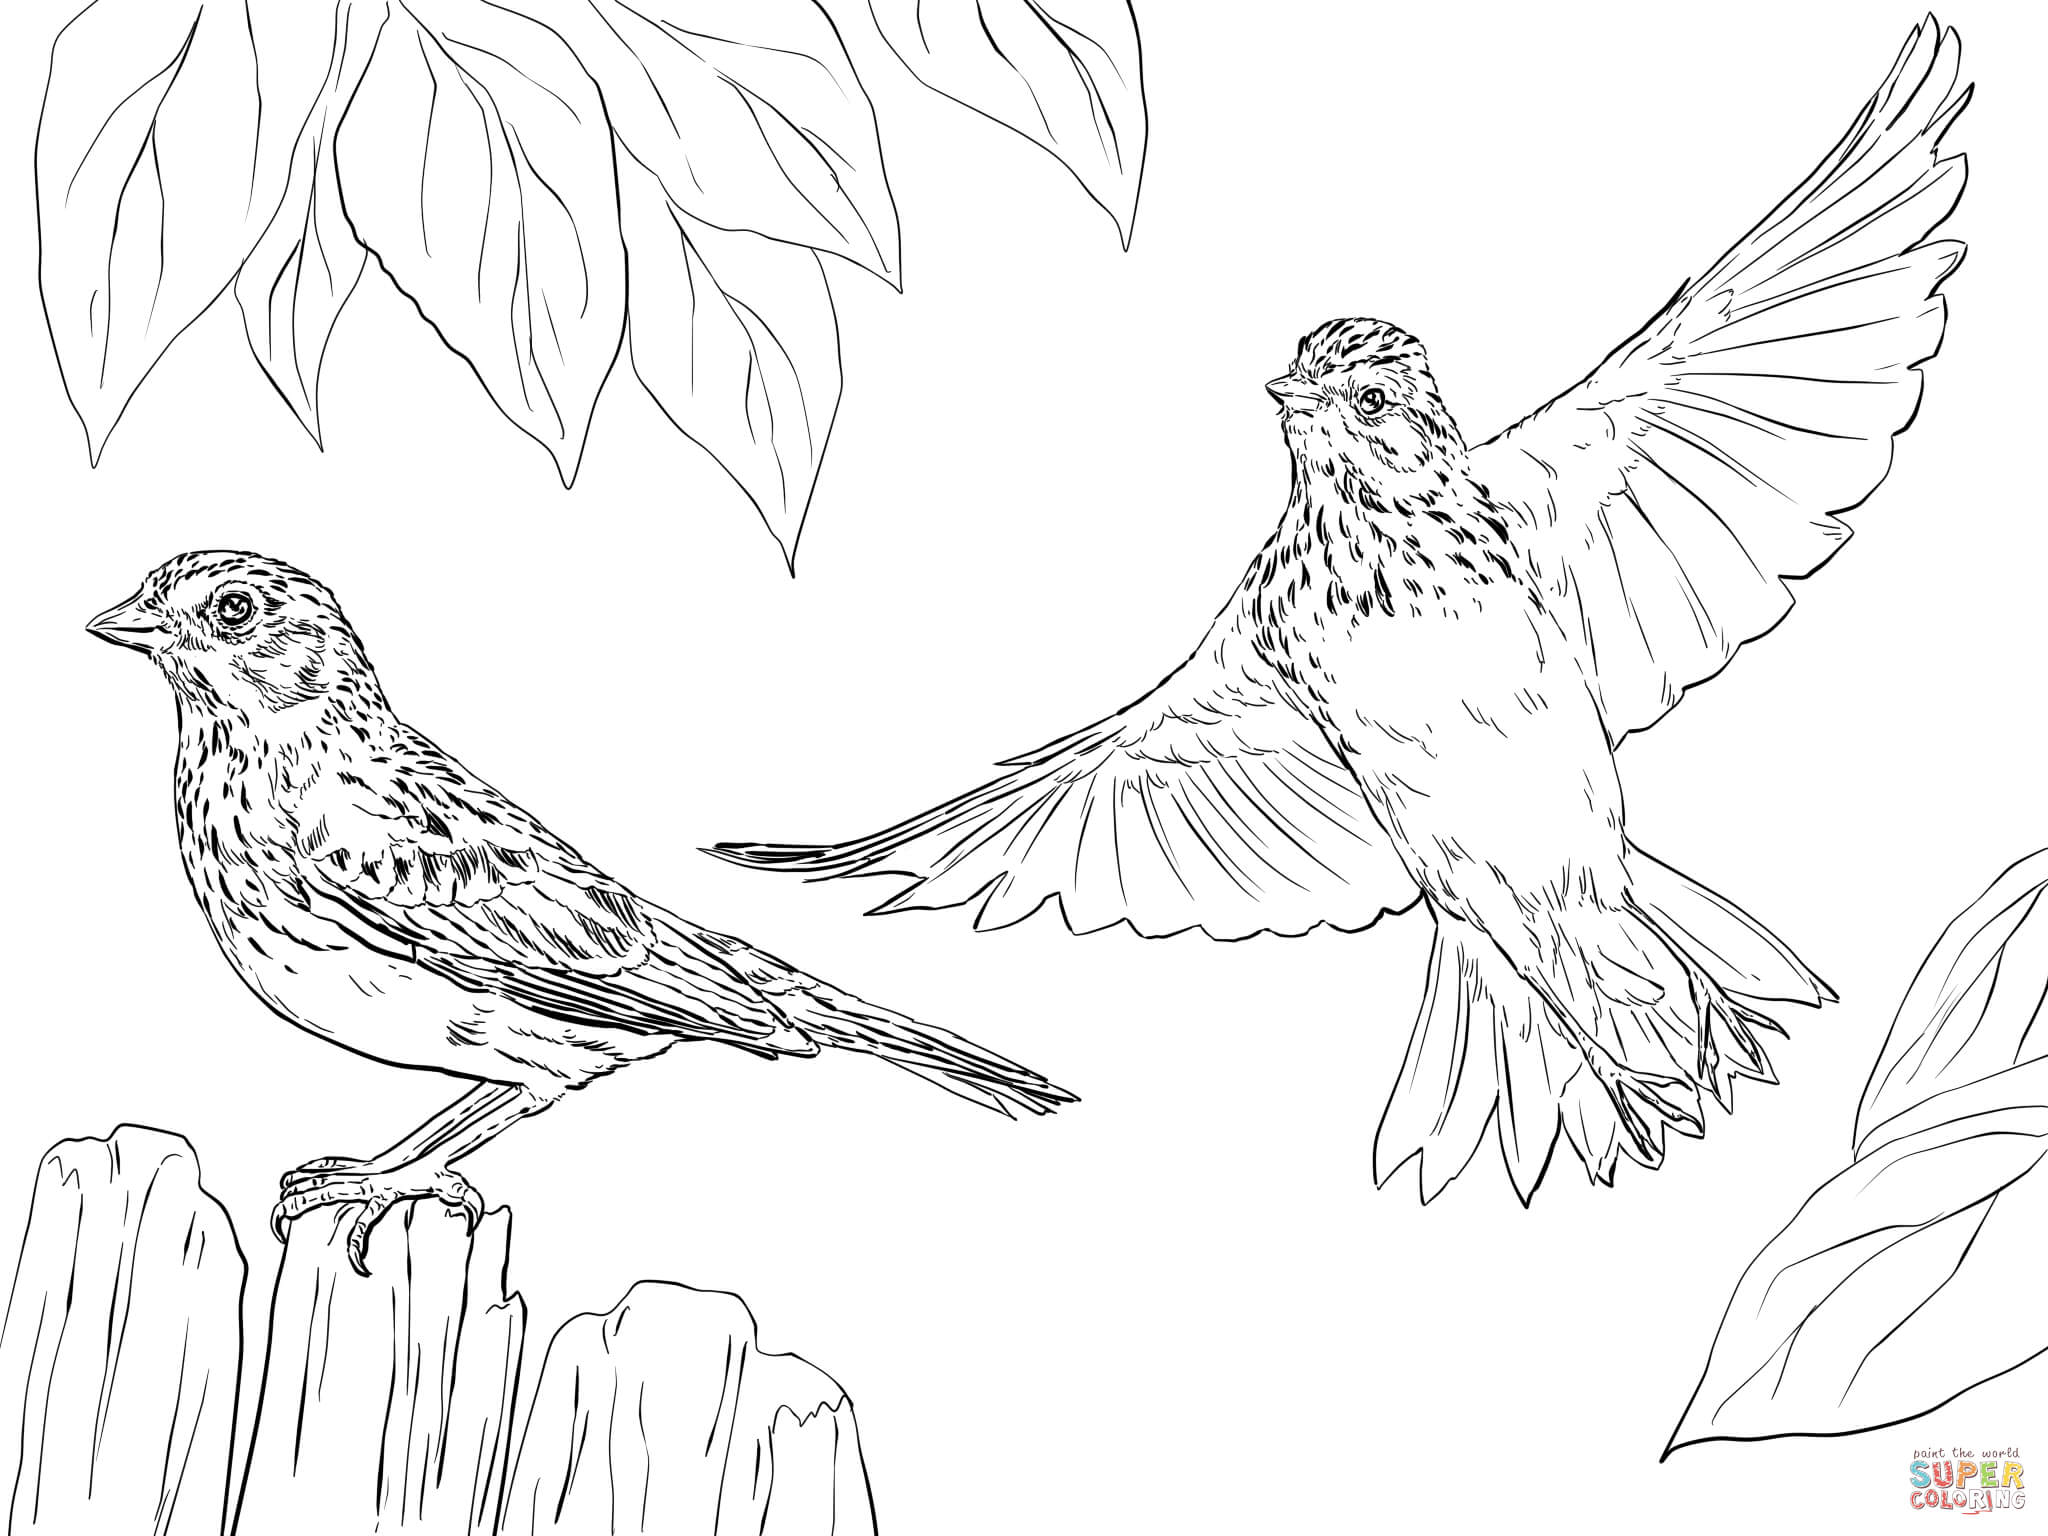 sparrow coloring pages simple sparrow drawing at getdrawings free download sparrow coloring pages